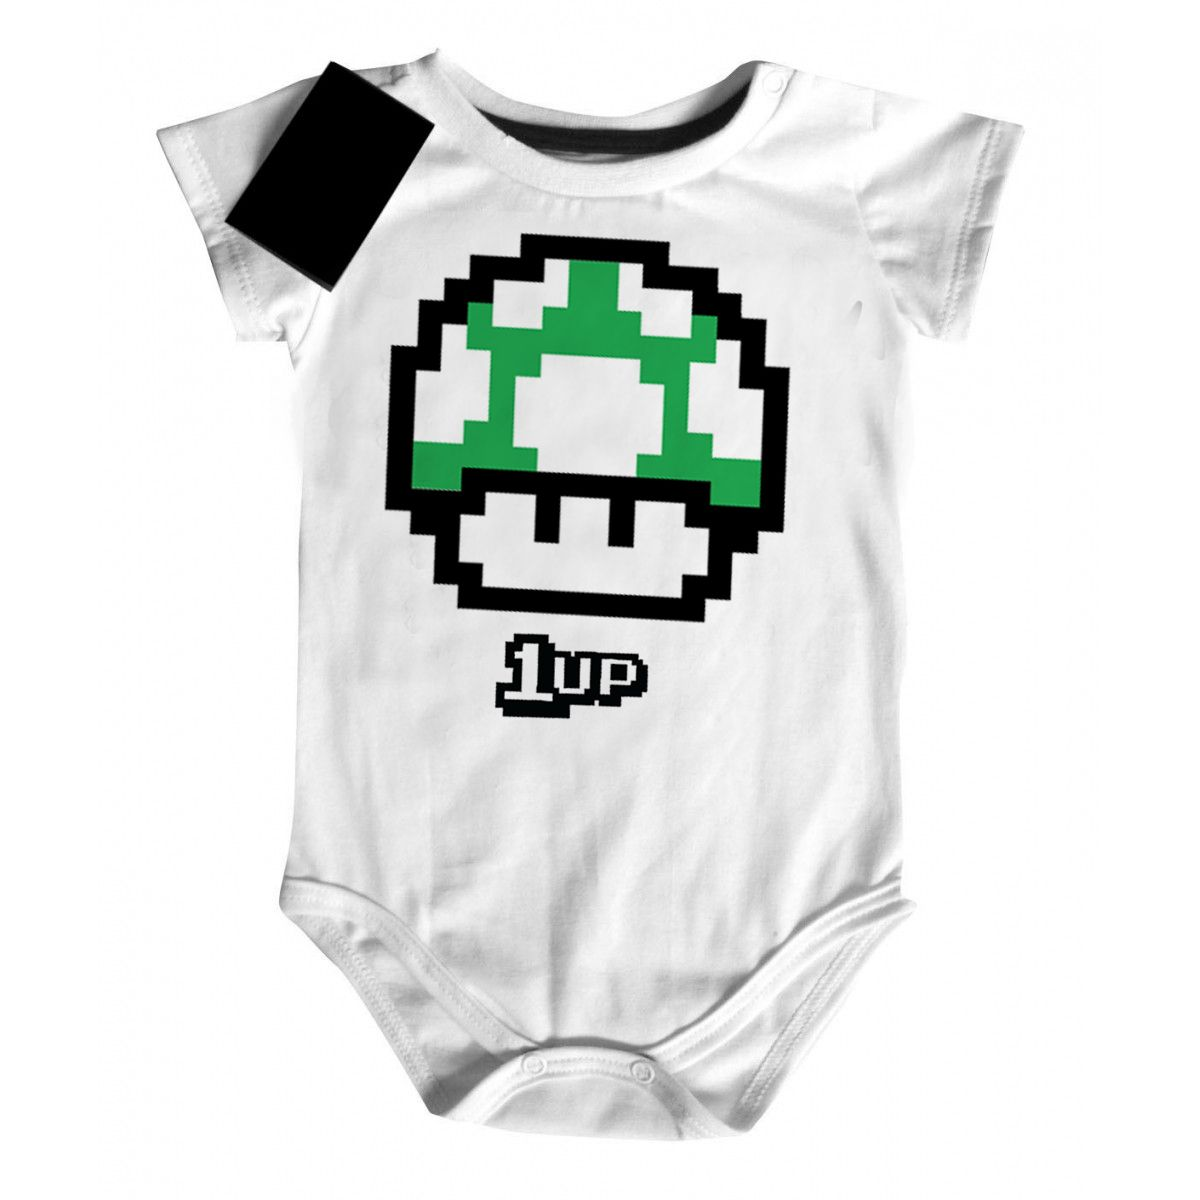 Body Bebe Nerd Geek -  Mario 1 Vida - White  - Baby Monster - Body Bebe